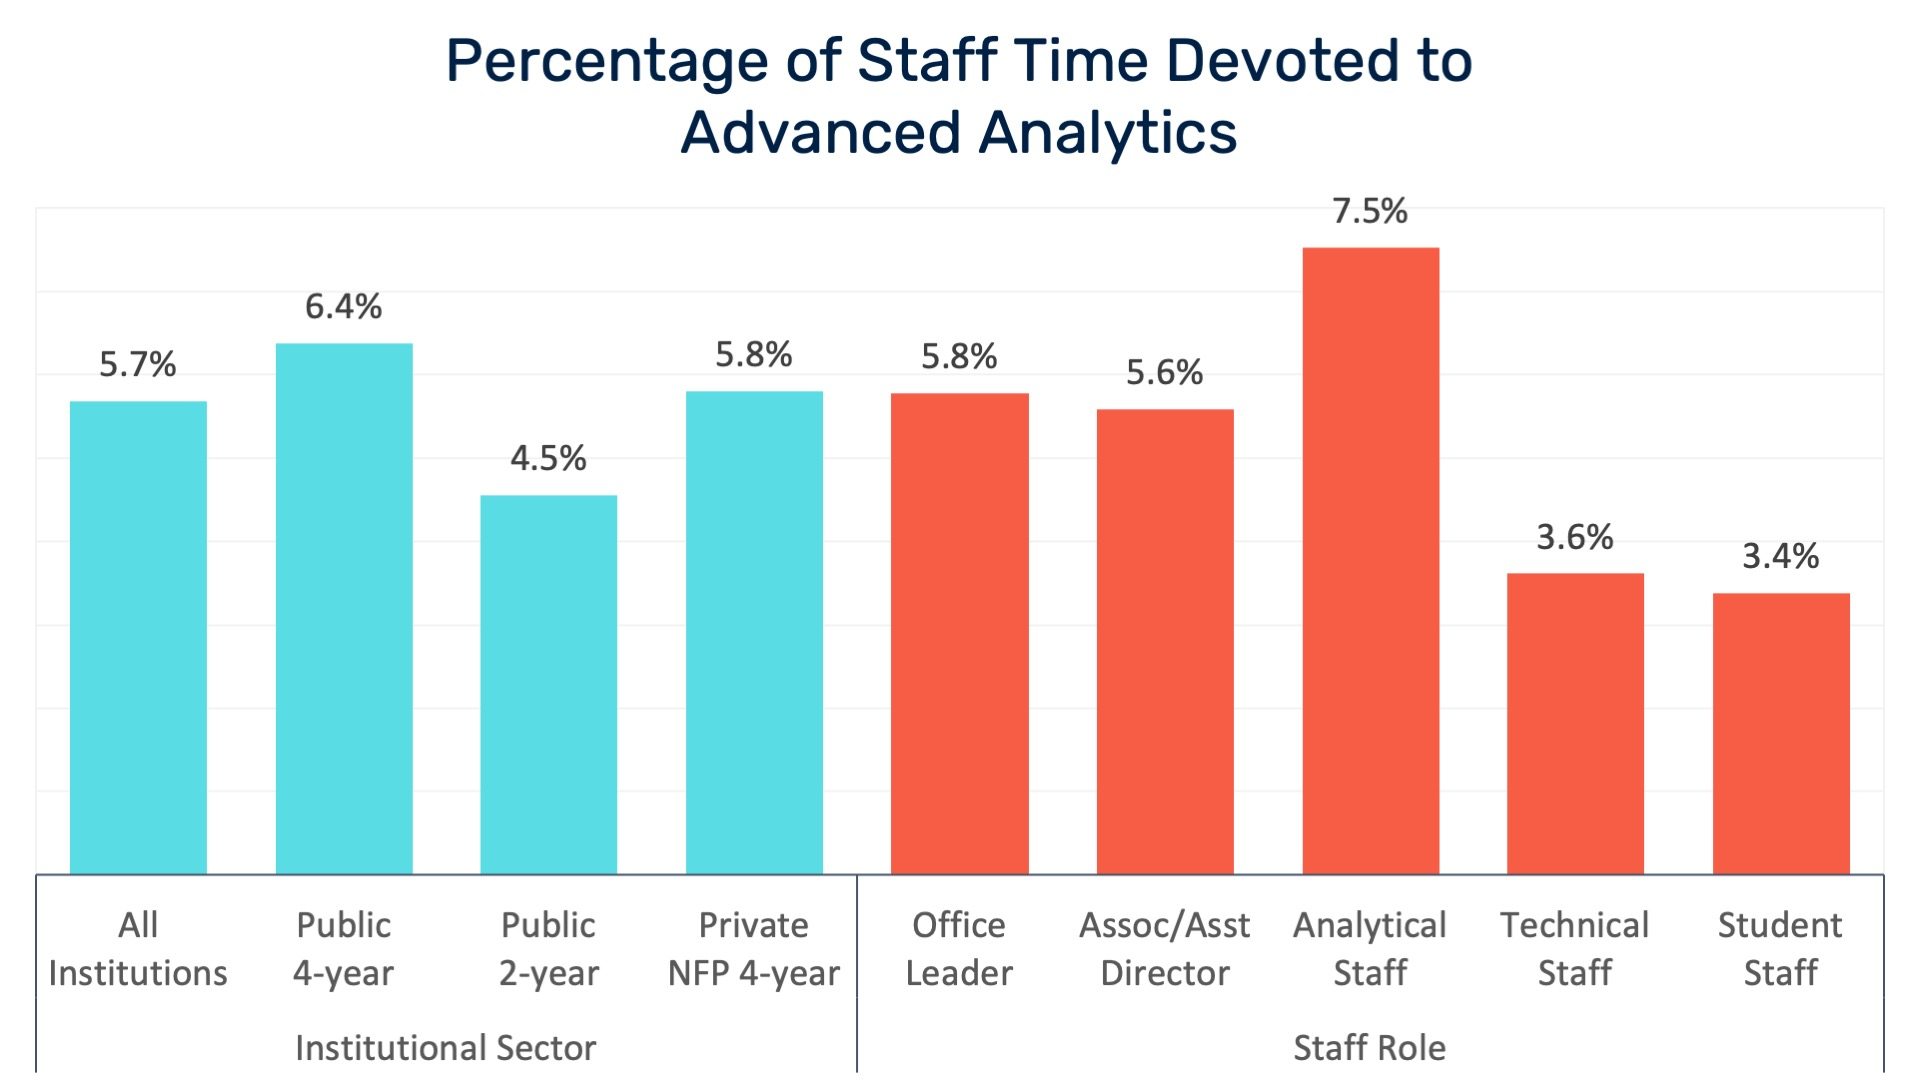 Percentage of Staff Time Devoted to Advanced Analytics